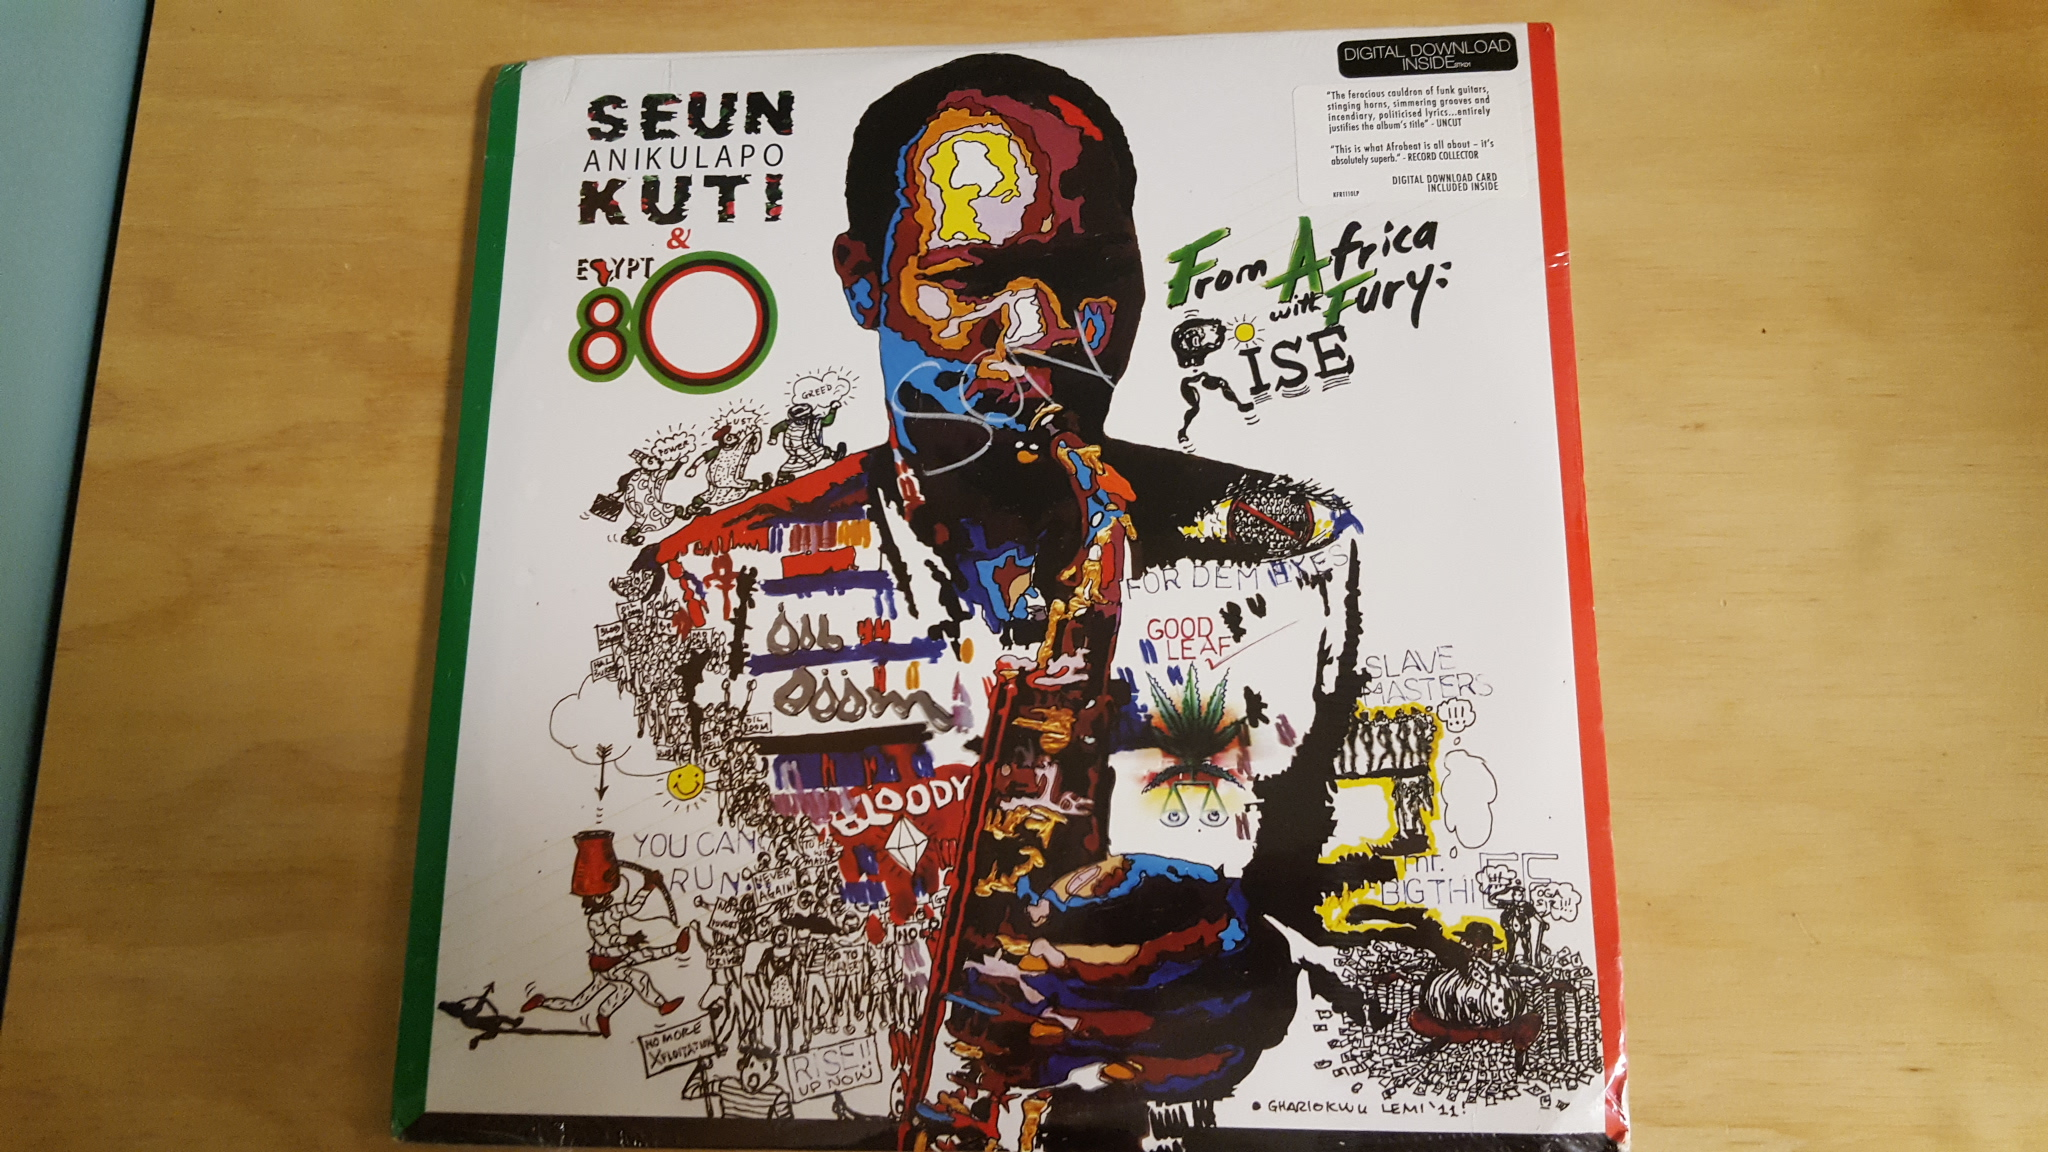 From Africa With Fury By Seun Kuti On Vinyl Record Lp